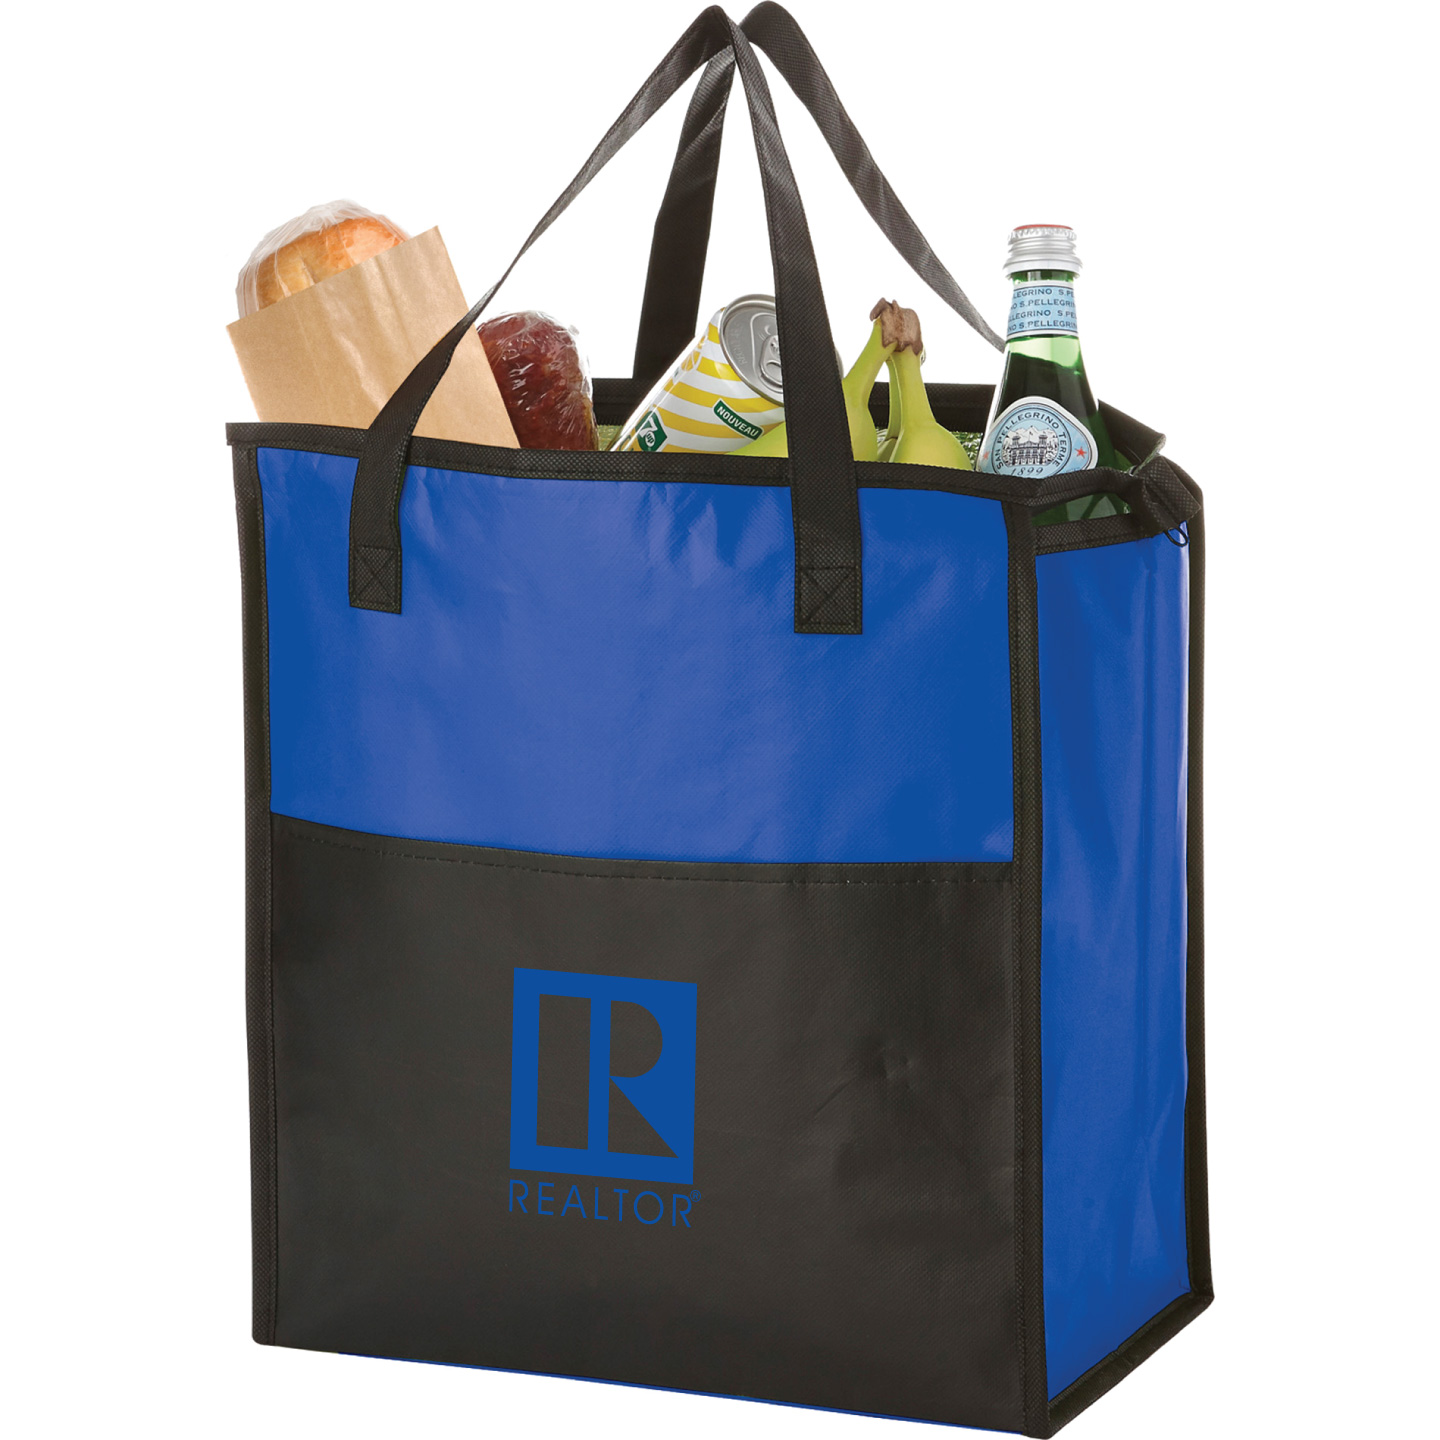 Insulated Grocery Zip Tote Canvas, Tote, Bag, Lunch, Gift, Store, Soda, Beer, Sport